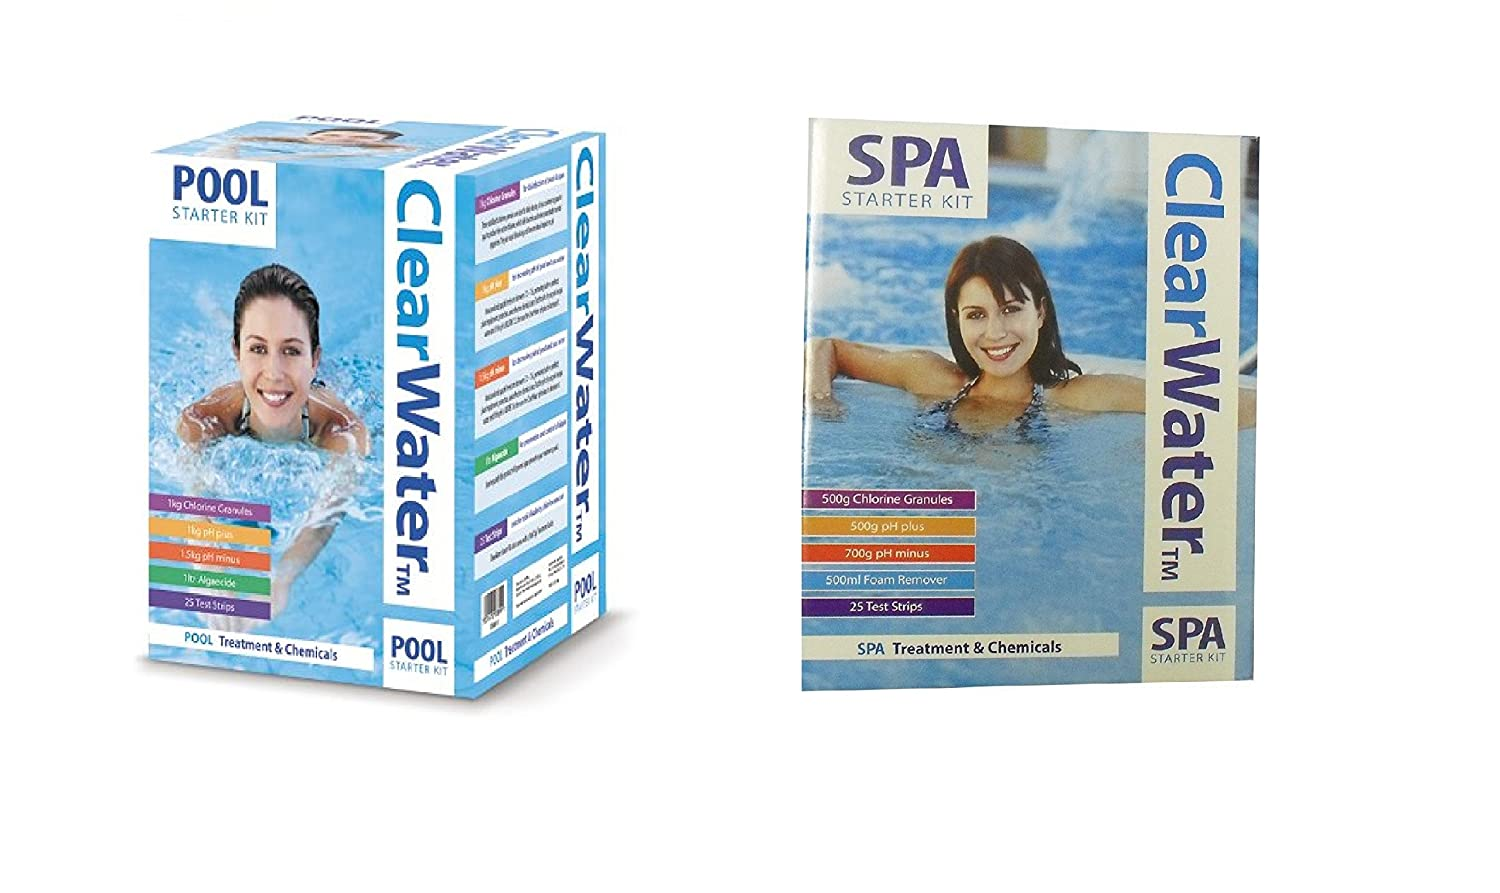 Set of 2 Clearwater Kit Includes: 500g White Clearwater Pool Chemicals Kit and 1/2 Size SPA Starter Kit Clearwater